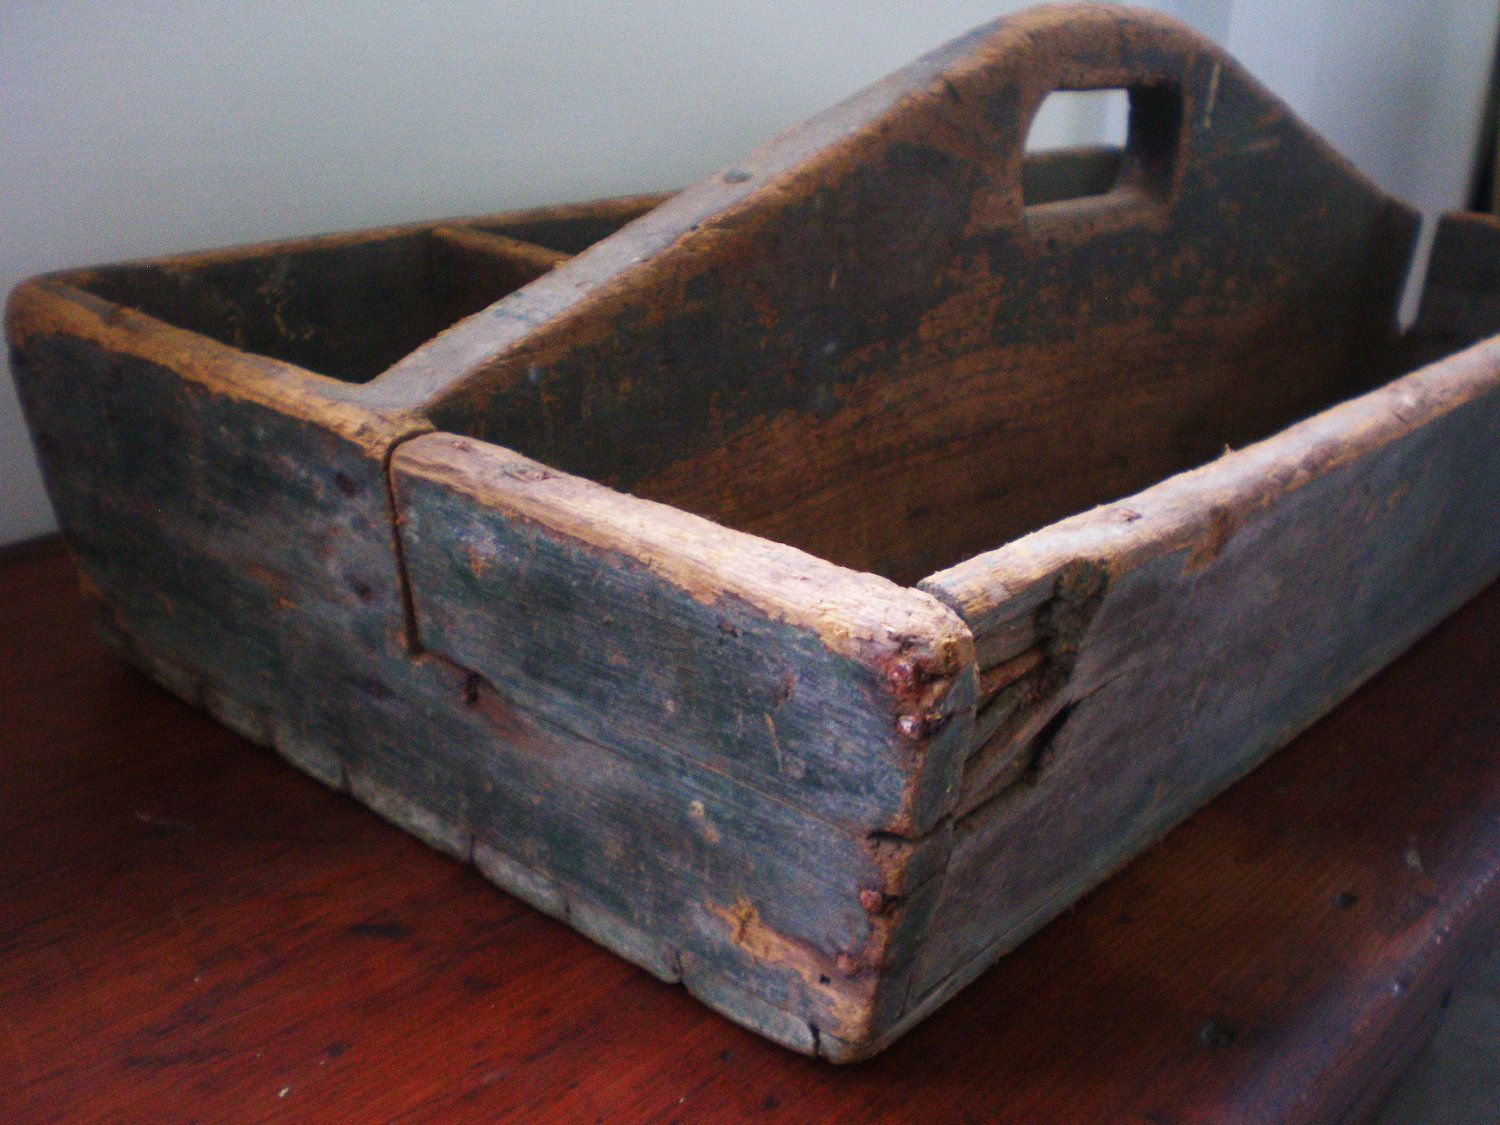 Really want to find an antique tool caddy for my dining  : 19a77201c7de19905791d927c8105eb5 from www.pinterest.com size 1500 x 1125 jpeg 418kB